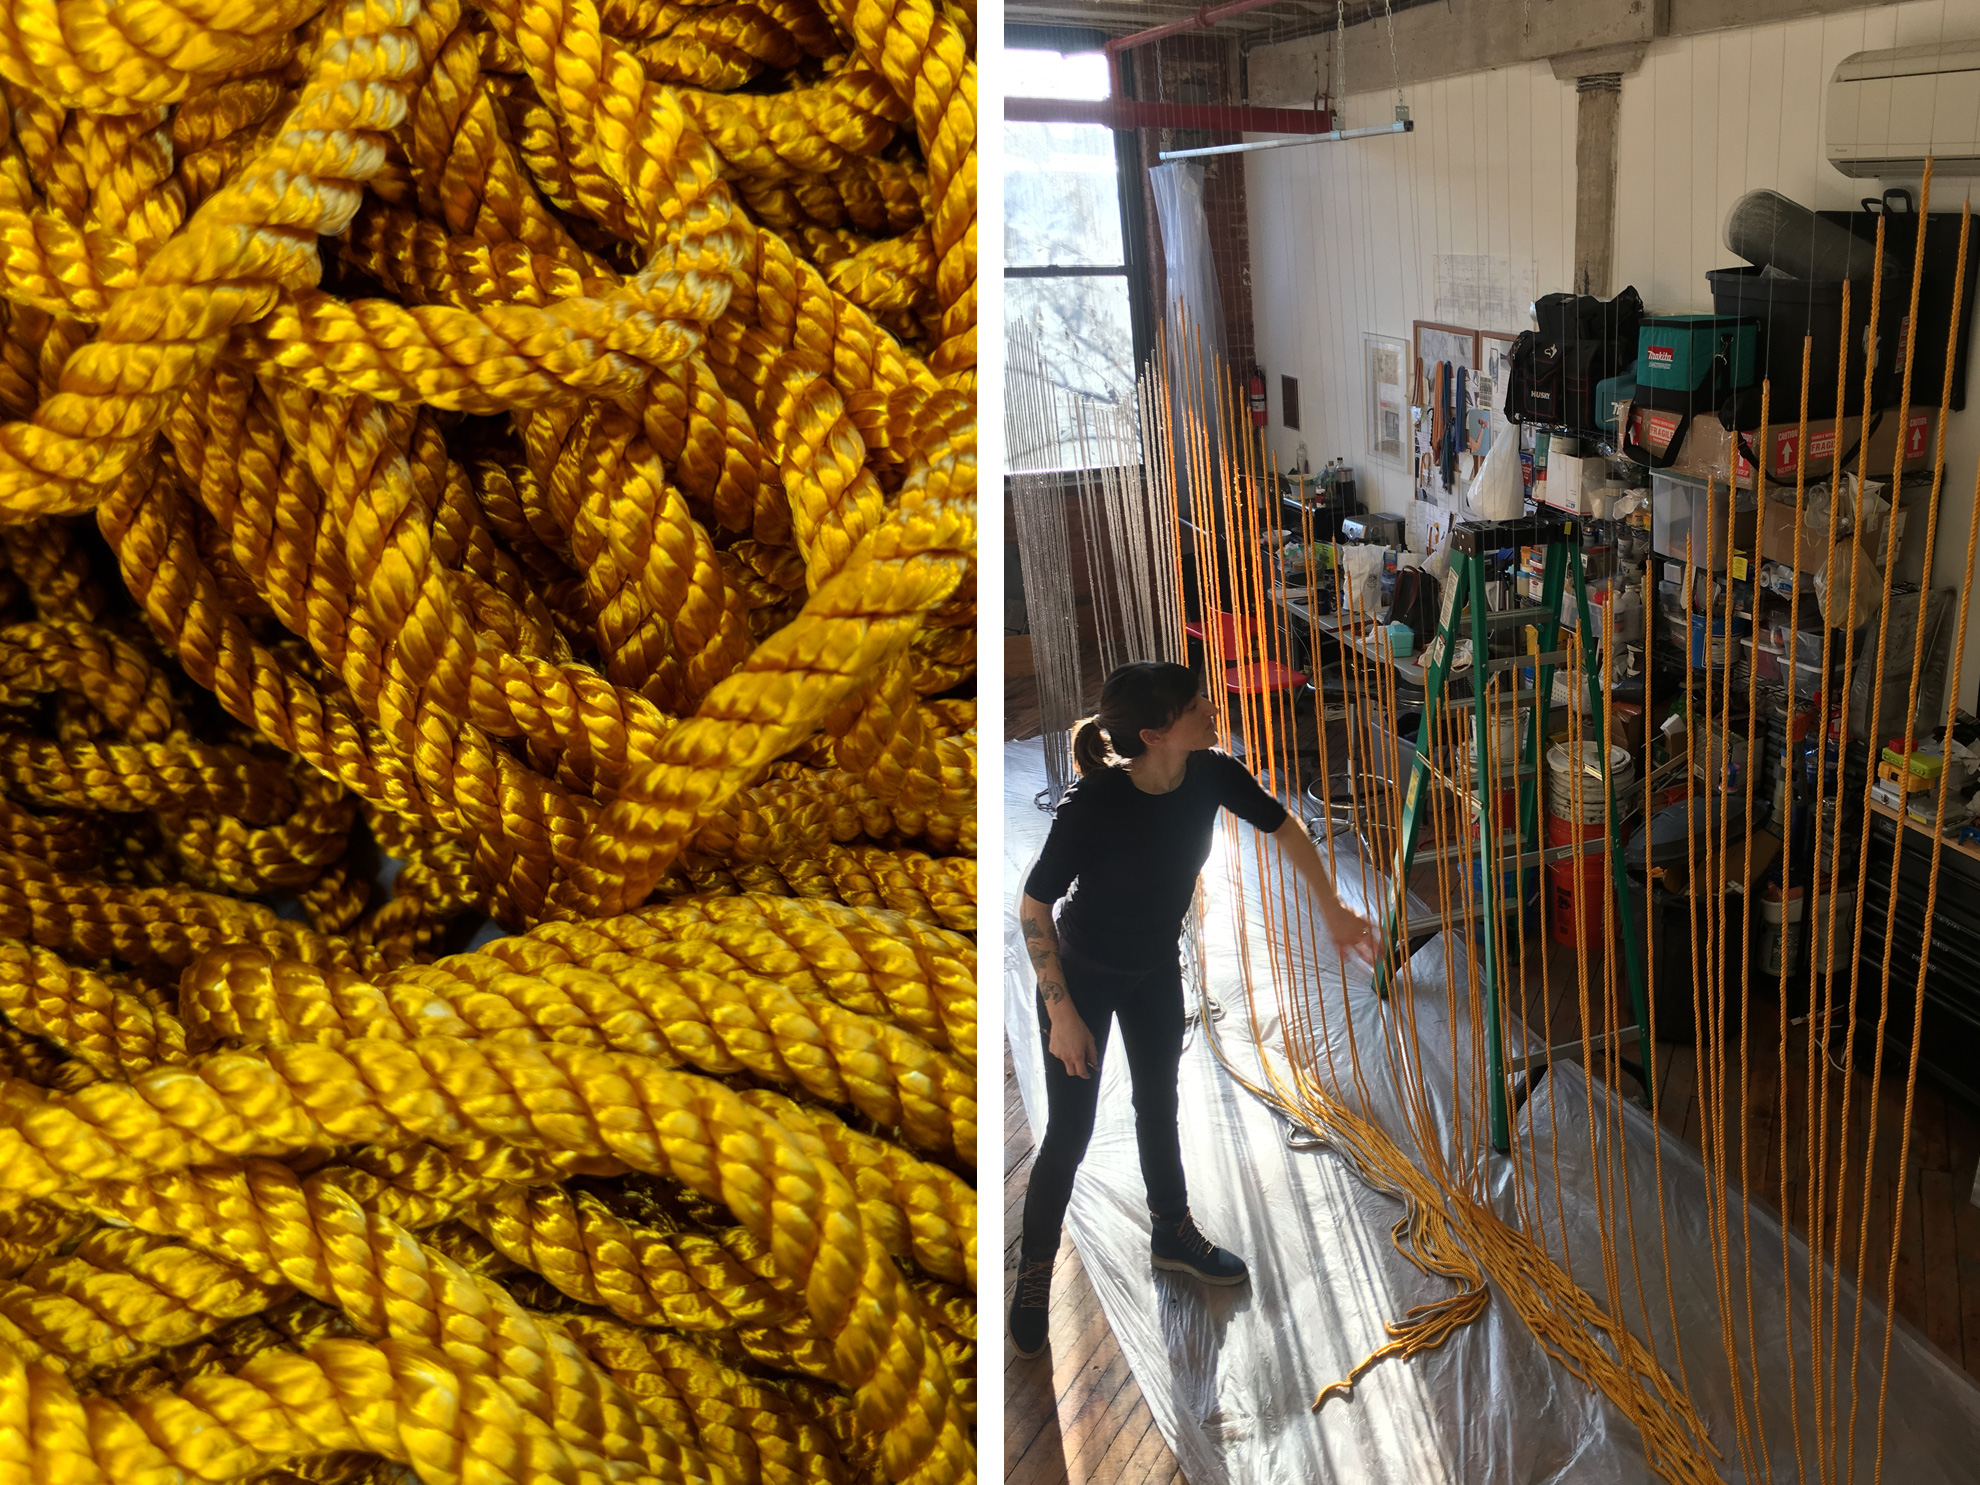 Rope artwork